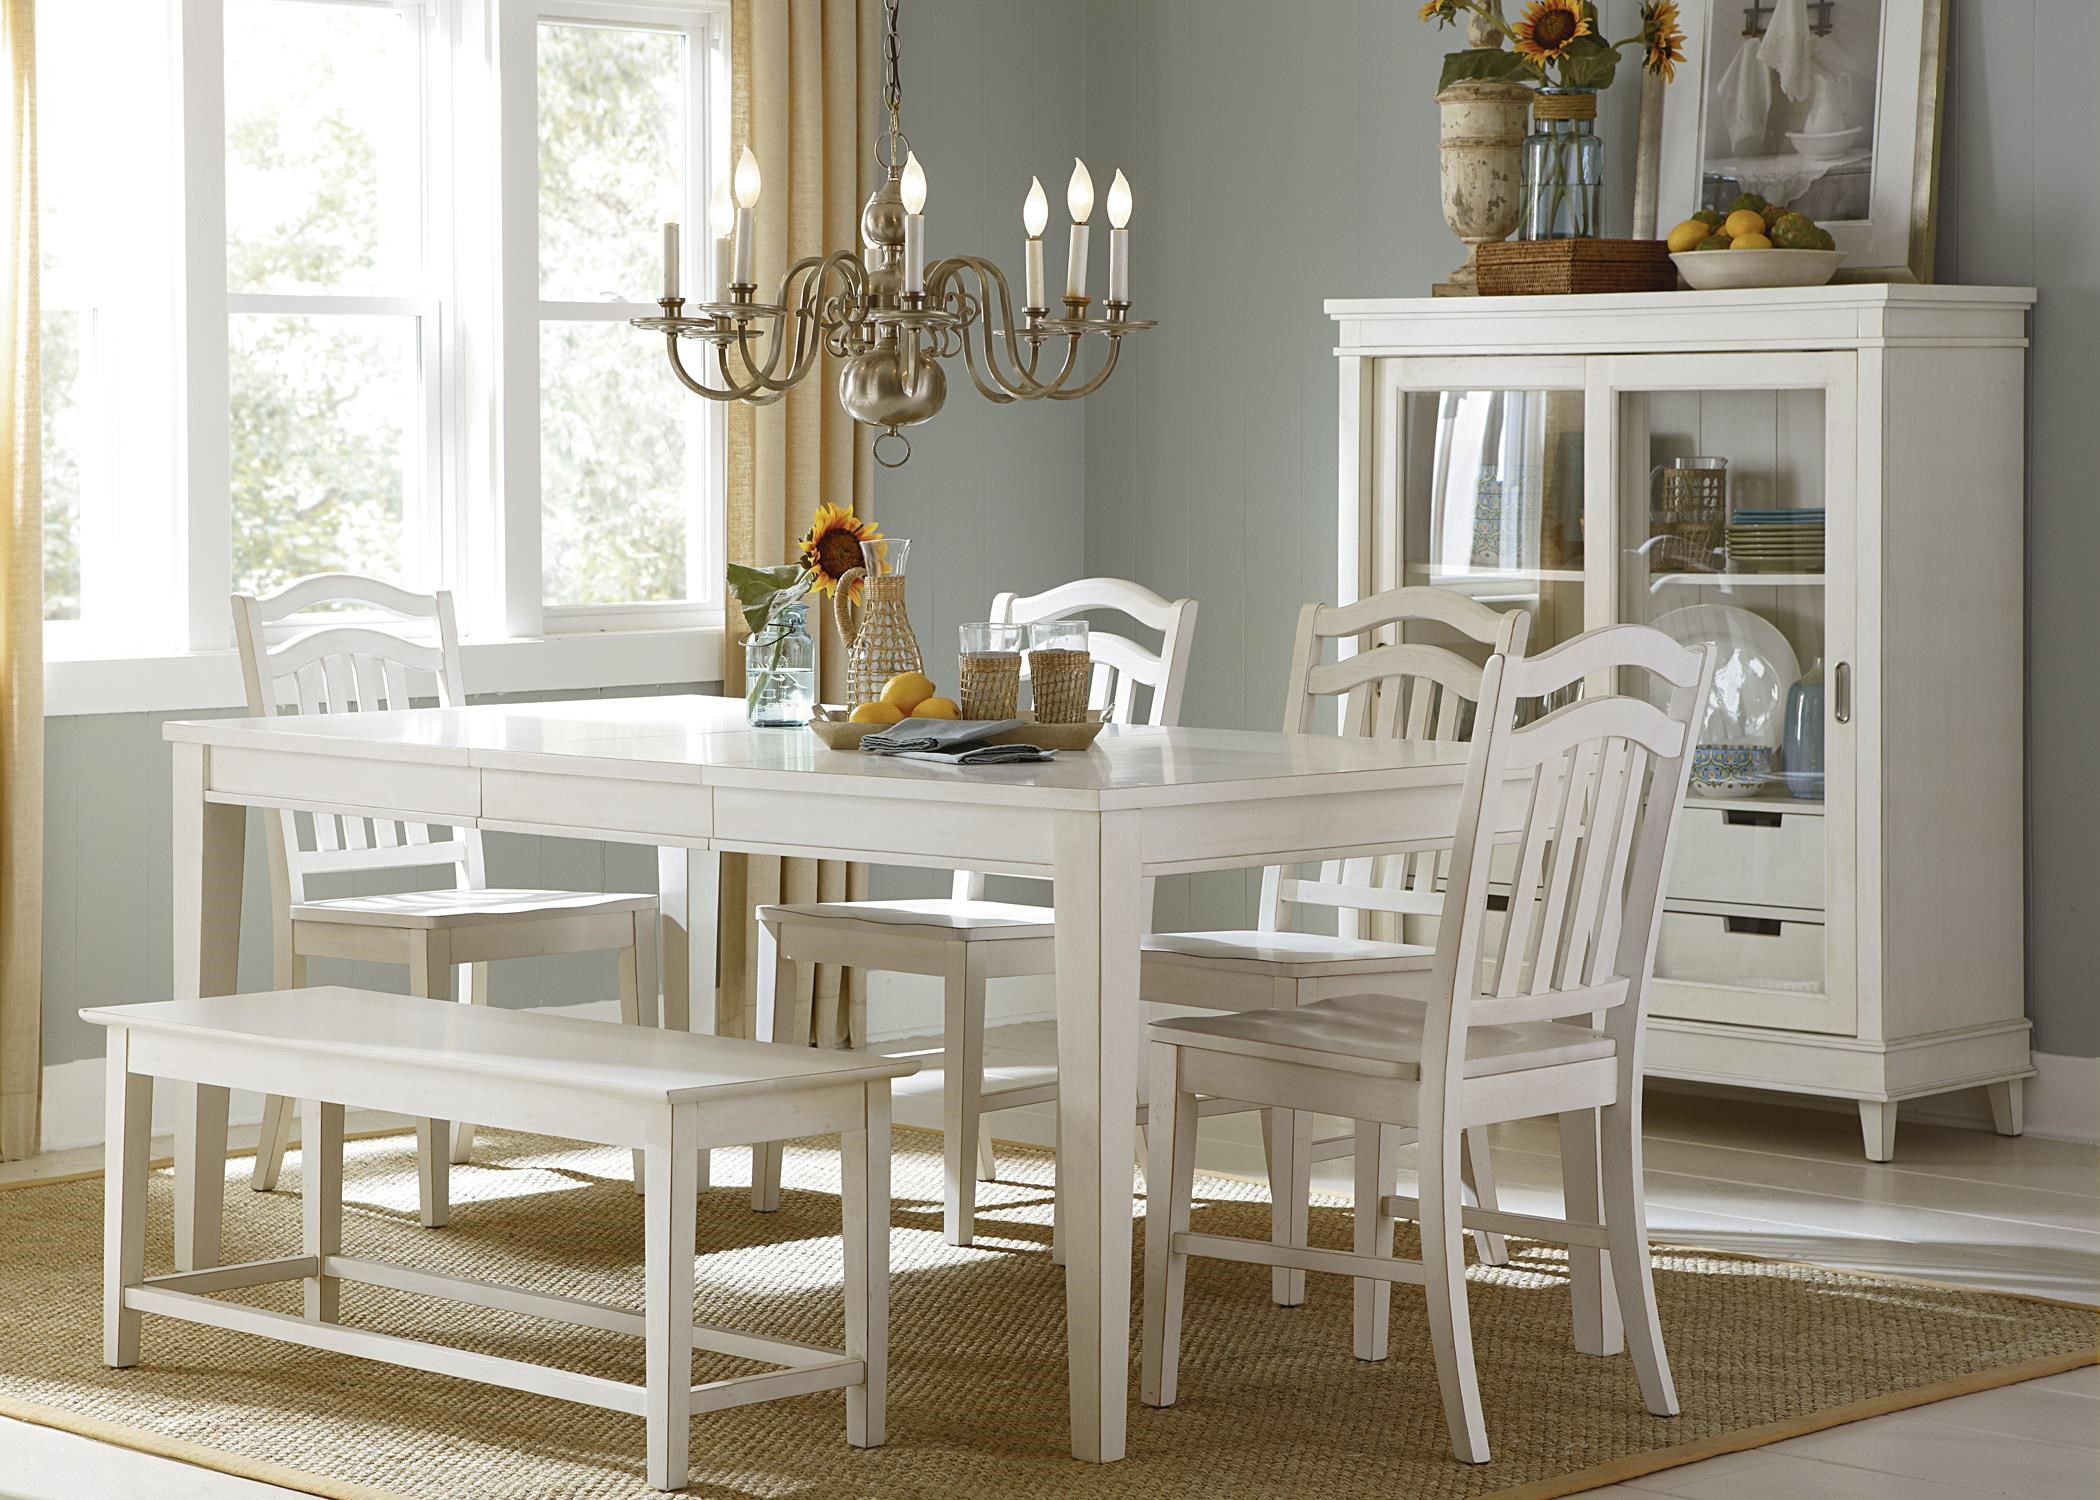 Liberty Furniture Summerhill Six Piece Rectangular Table, Bench, And Chair Dining  Set